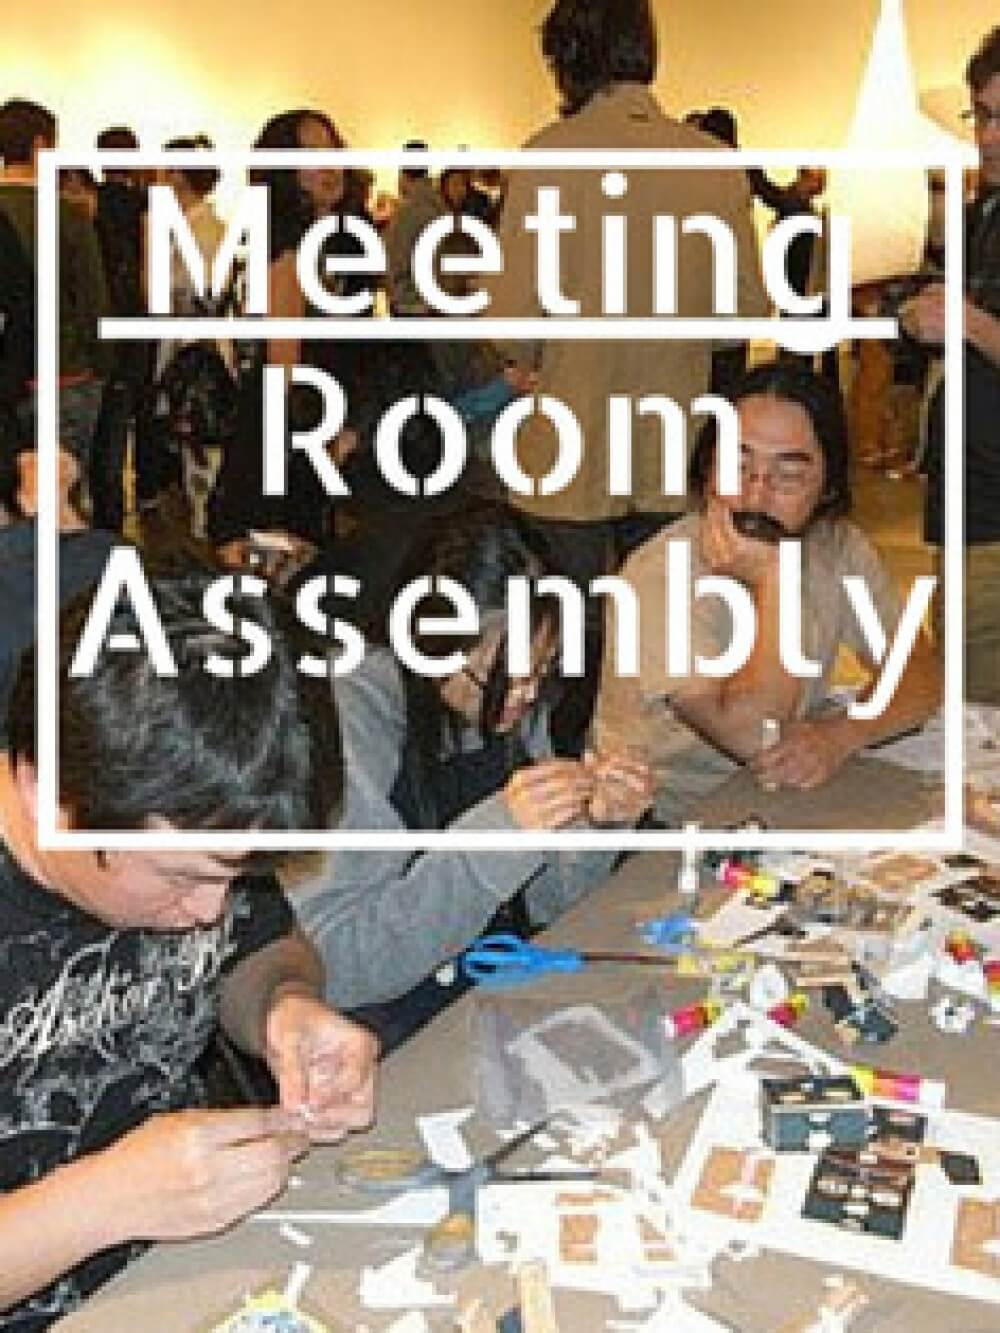 meeting_room_assembly_vertical_web